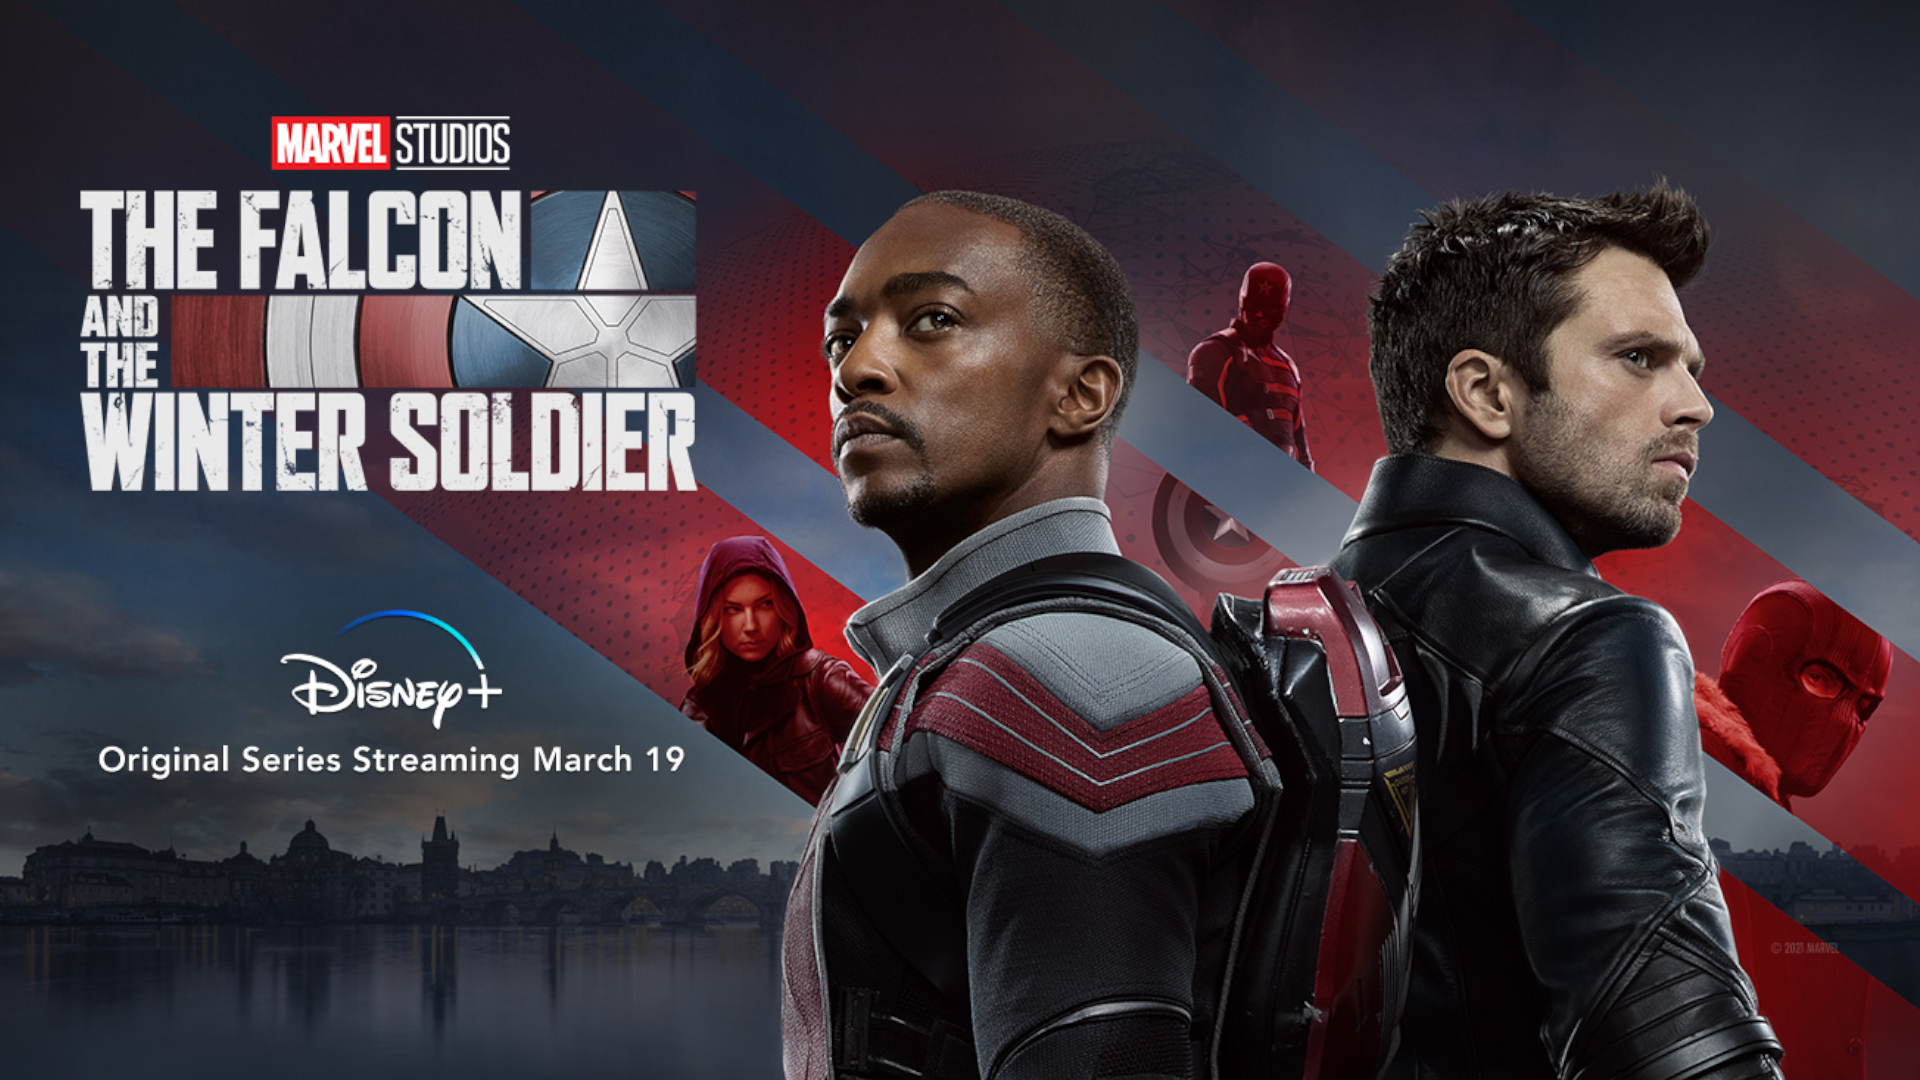 The Falcon and the Winter Soldier (2021) S01 EP05 [Tamil + Telugu + Hindi + English] HD Web Series